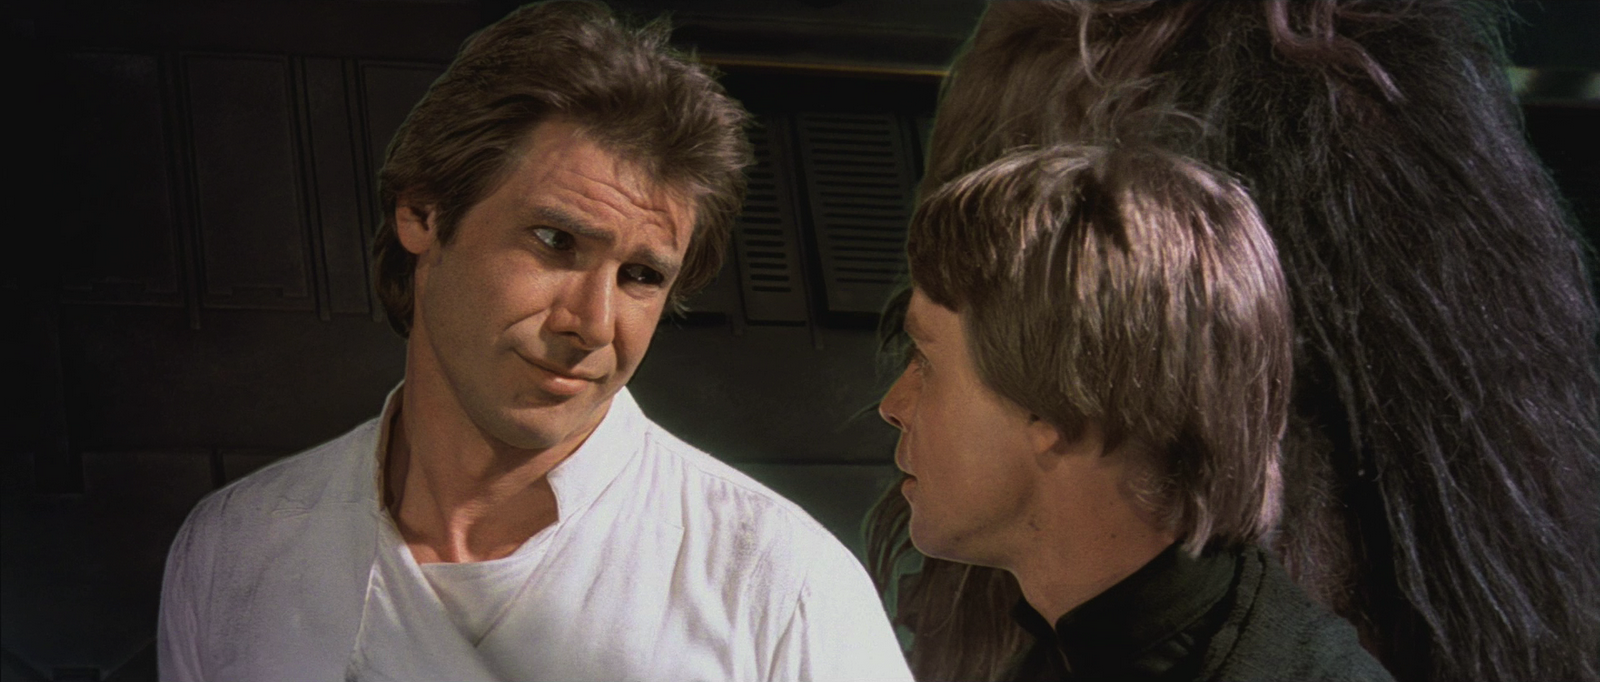 han-and-luke-in-return-of-the-jedi.png